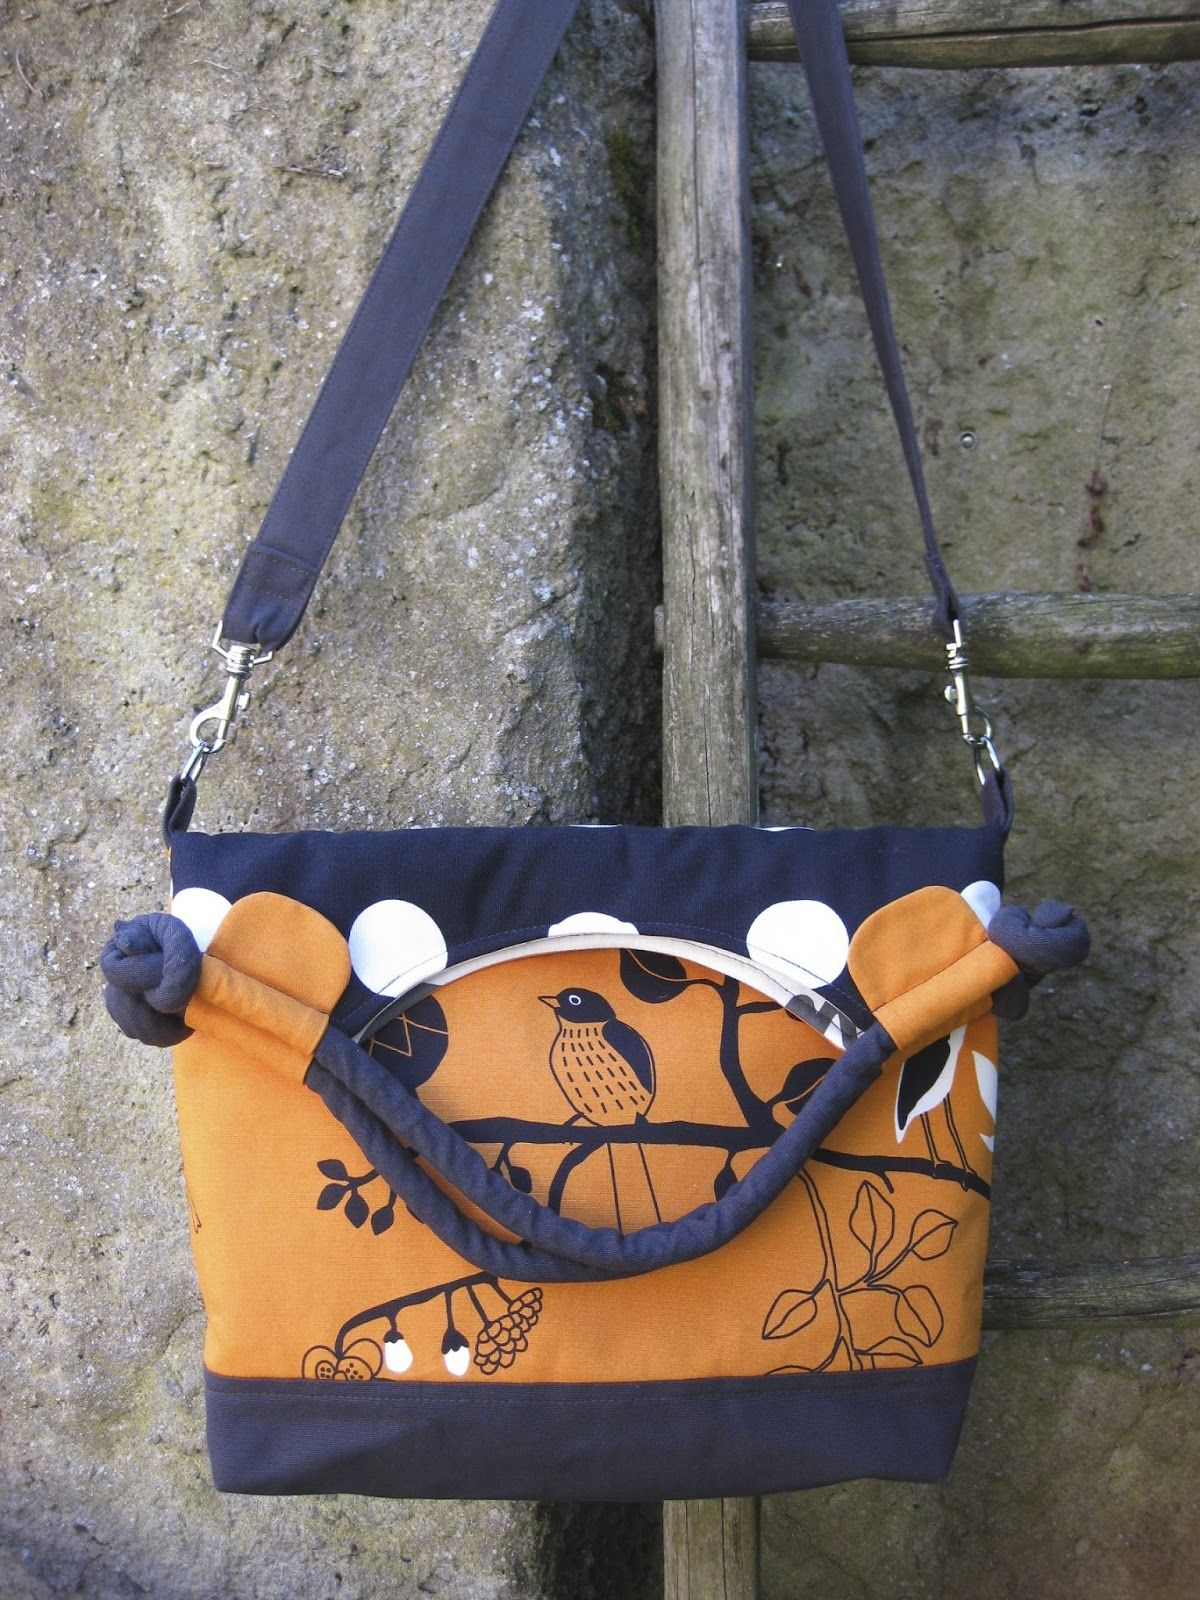 Sew Sweetness Lapin Noir Bag sewn by Liz of Moments